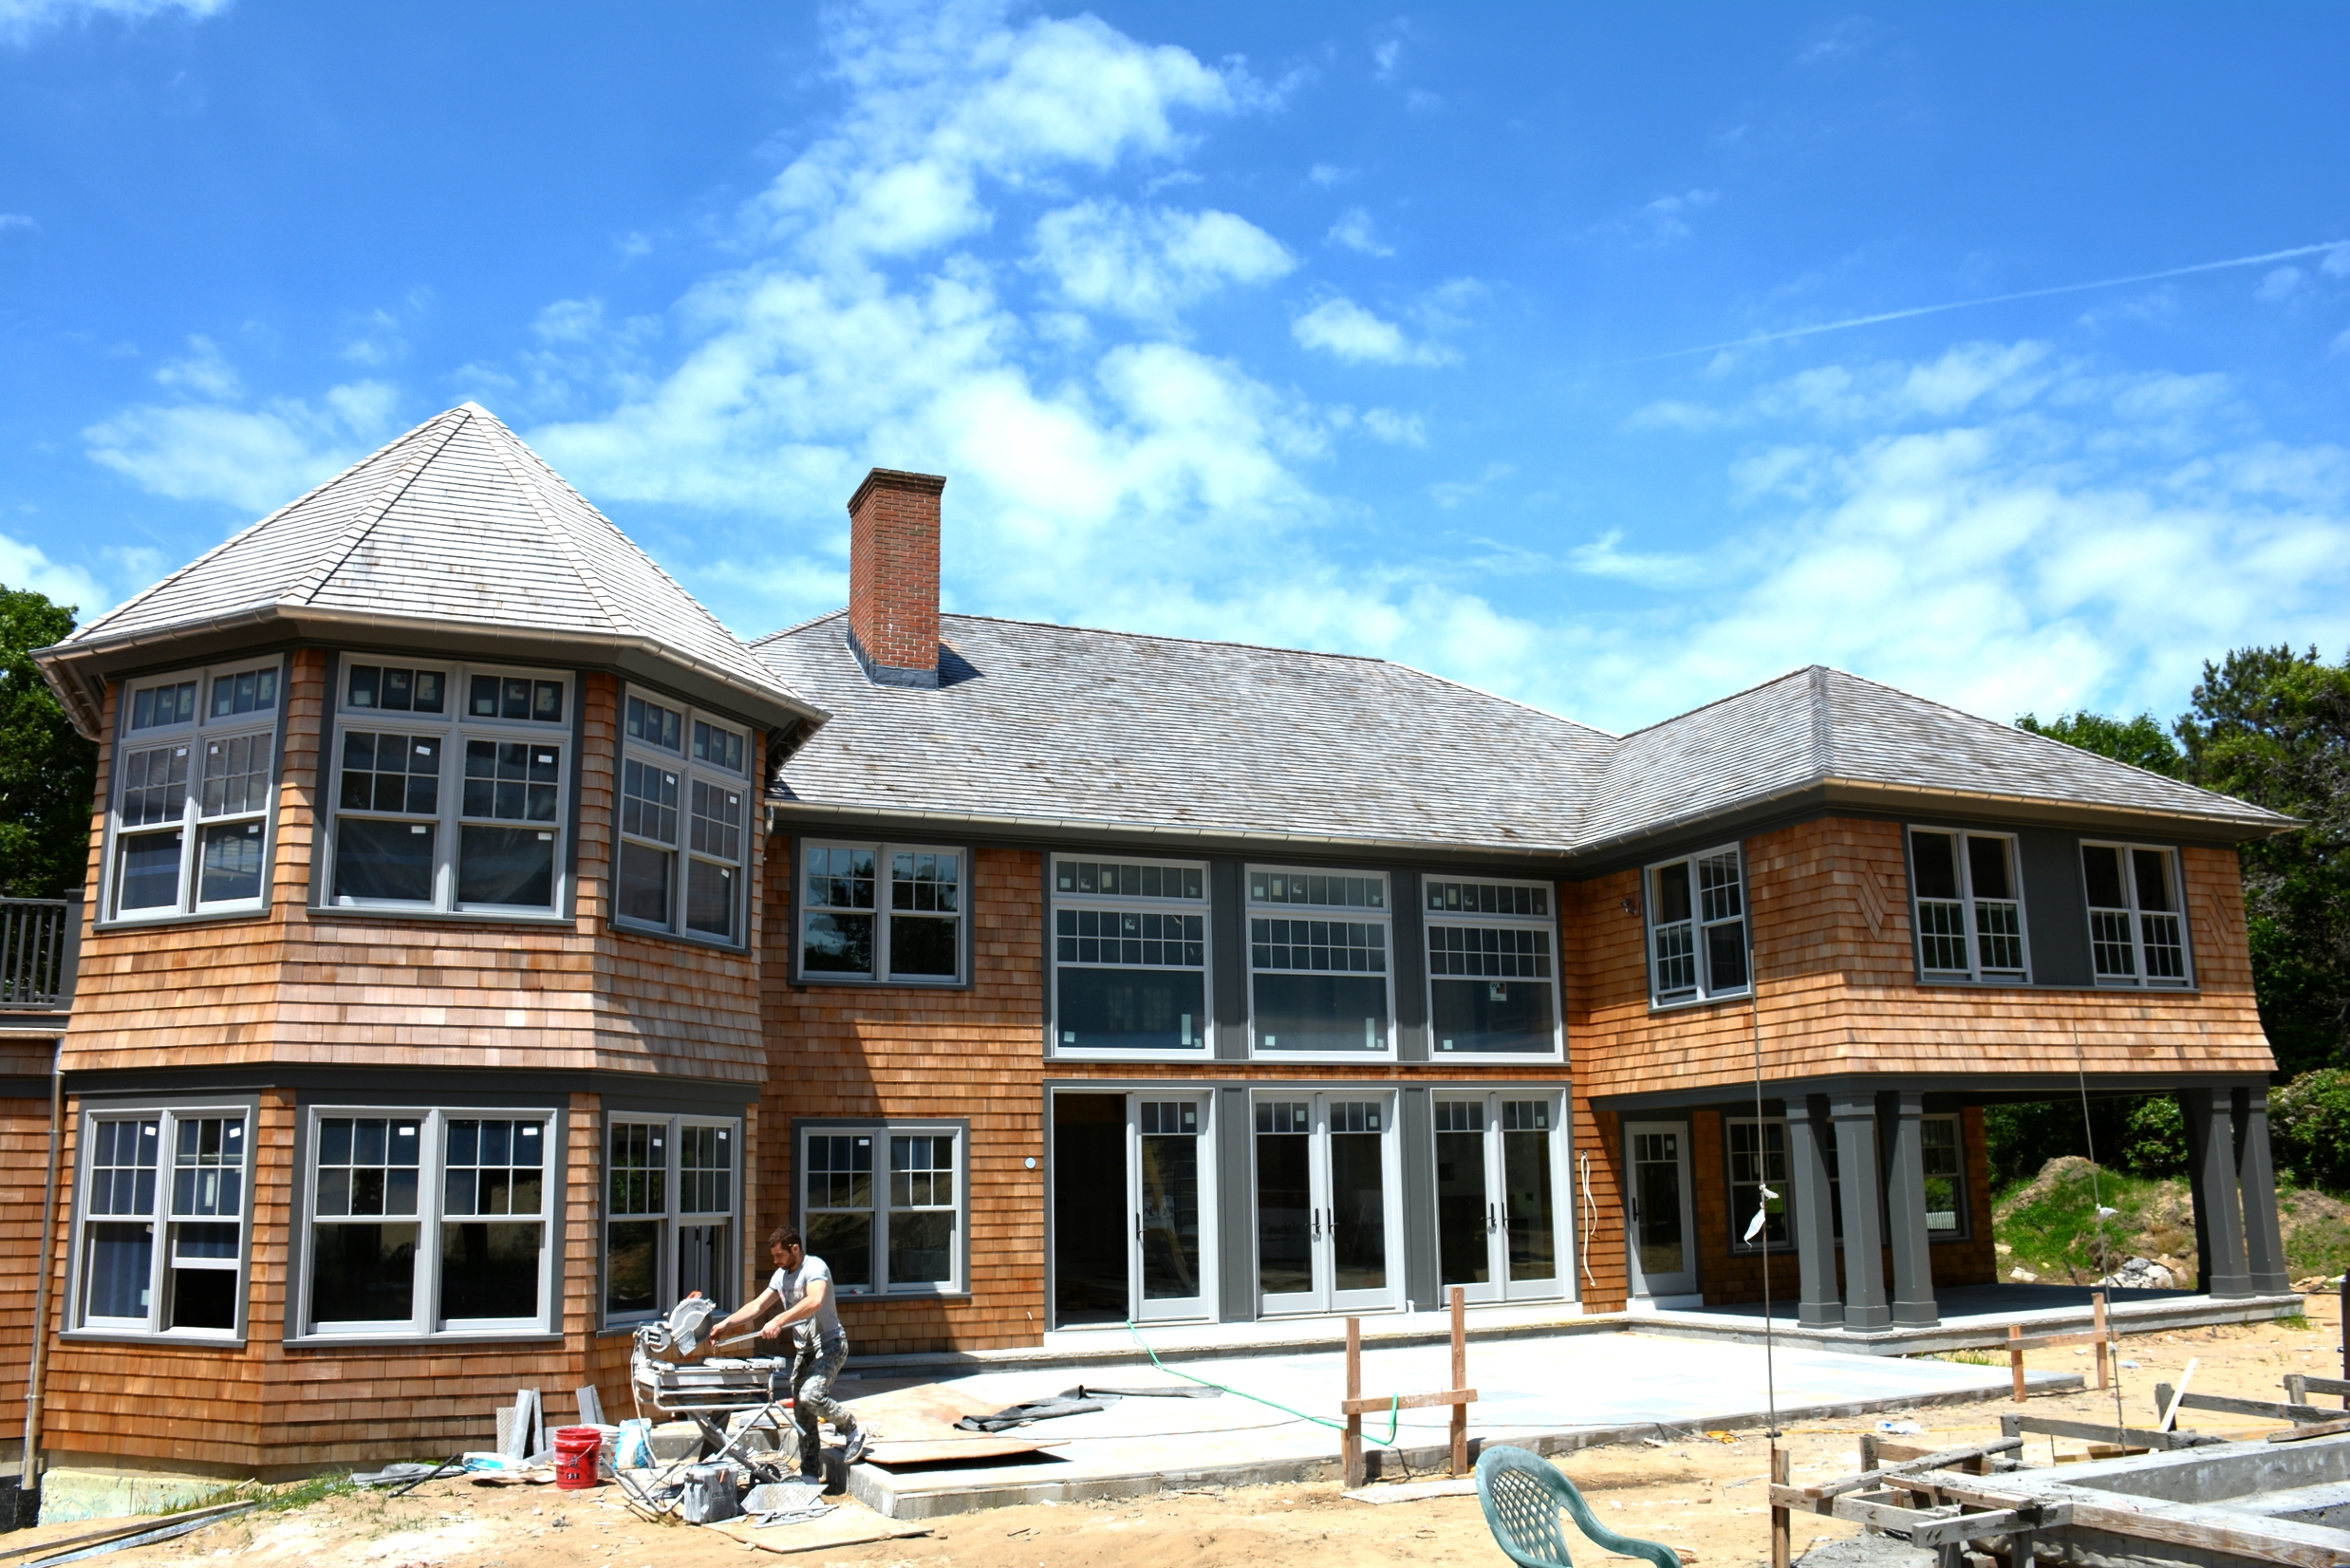 This residential property located in Amagansett, NY is currently in progress. We are really excited to see this project come near completion.